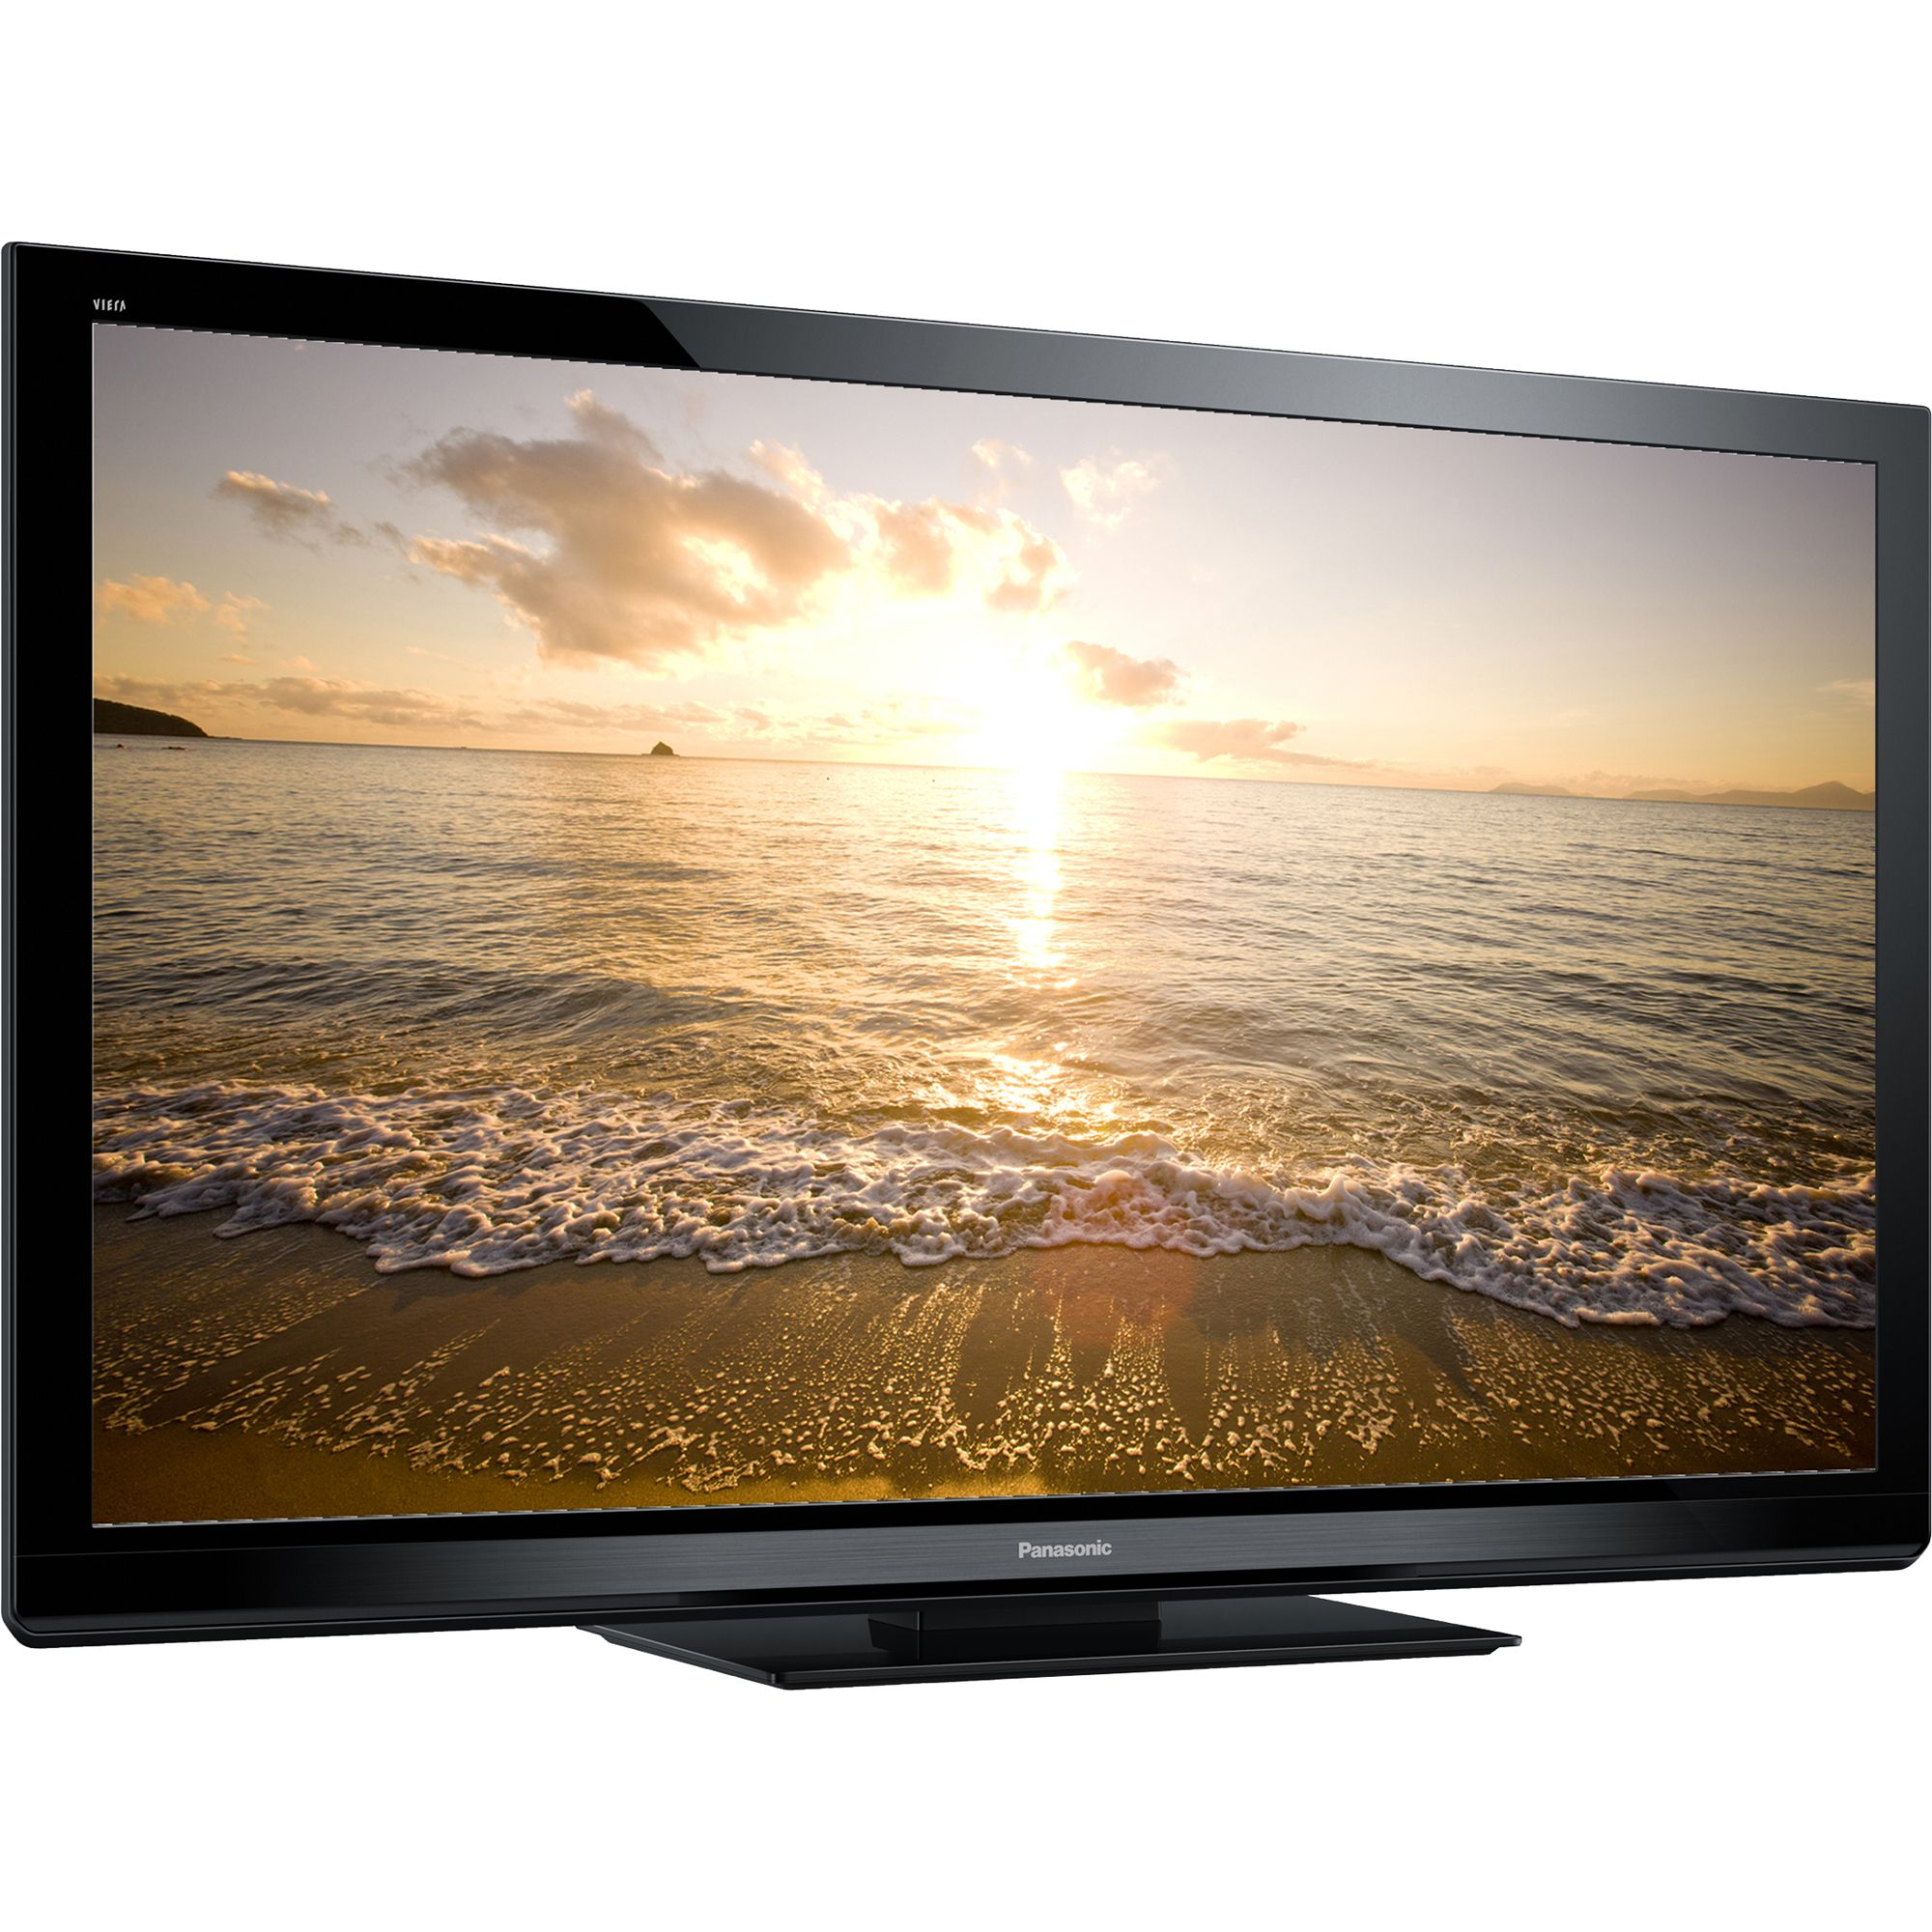 "Panasonic (Refurbished) 60"" Class Viera® S Series Plasma HDTV"